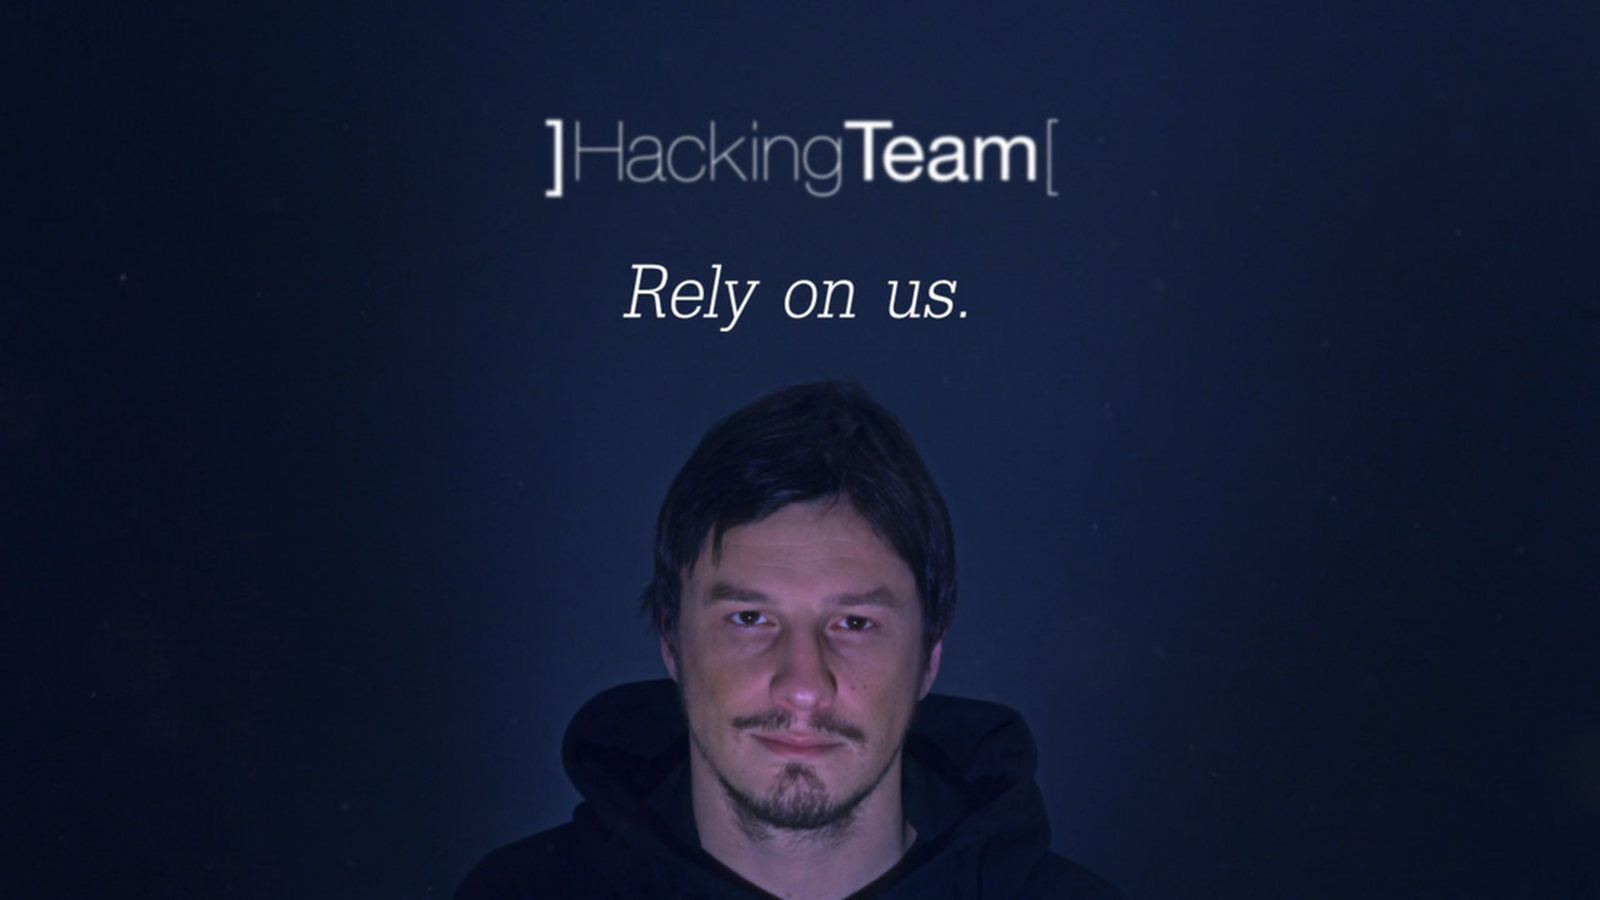 Leaked Docs Show FBI, DEA and U.S. Army Buying Italy's Hacking Team Spyware http://t.co/PxFDELBL7H